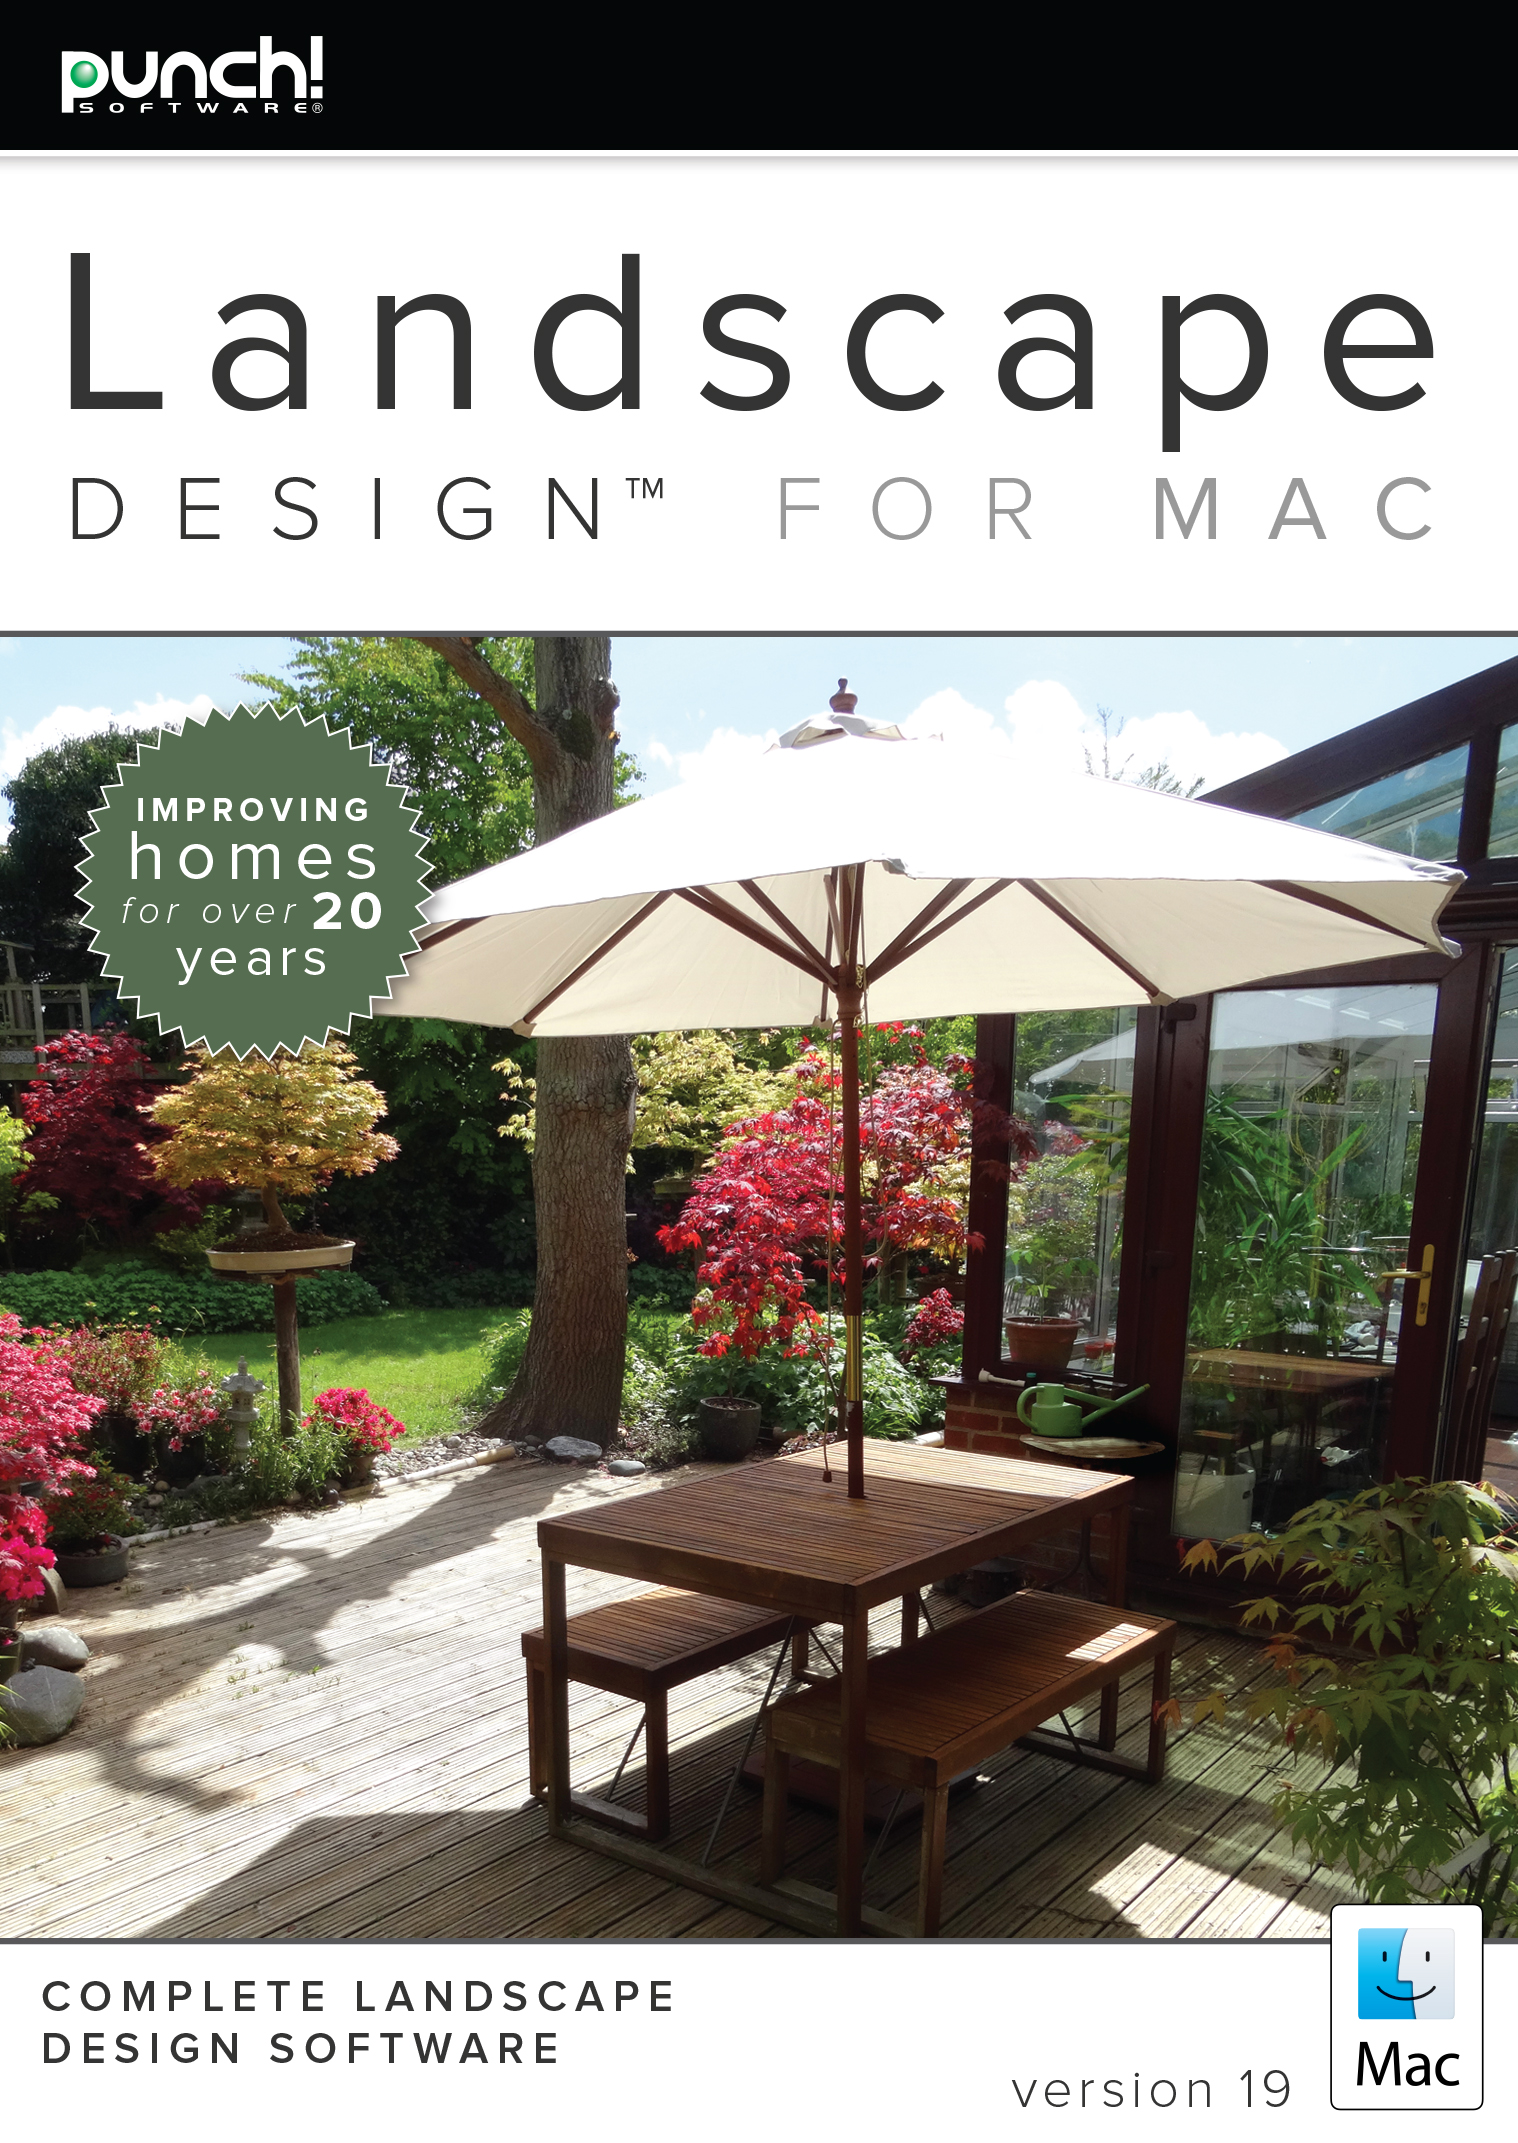 Punch landscape design customer reviews prices specs for Landscape design degree